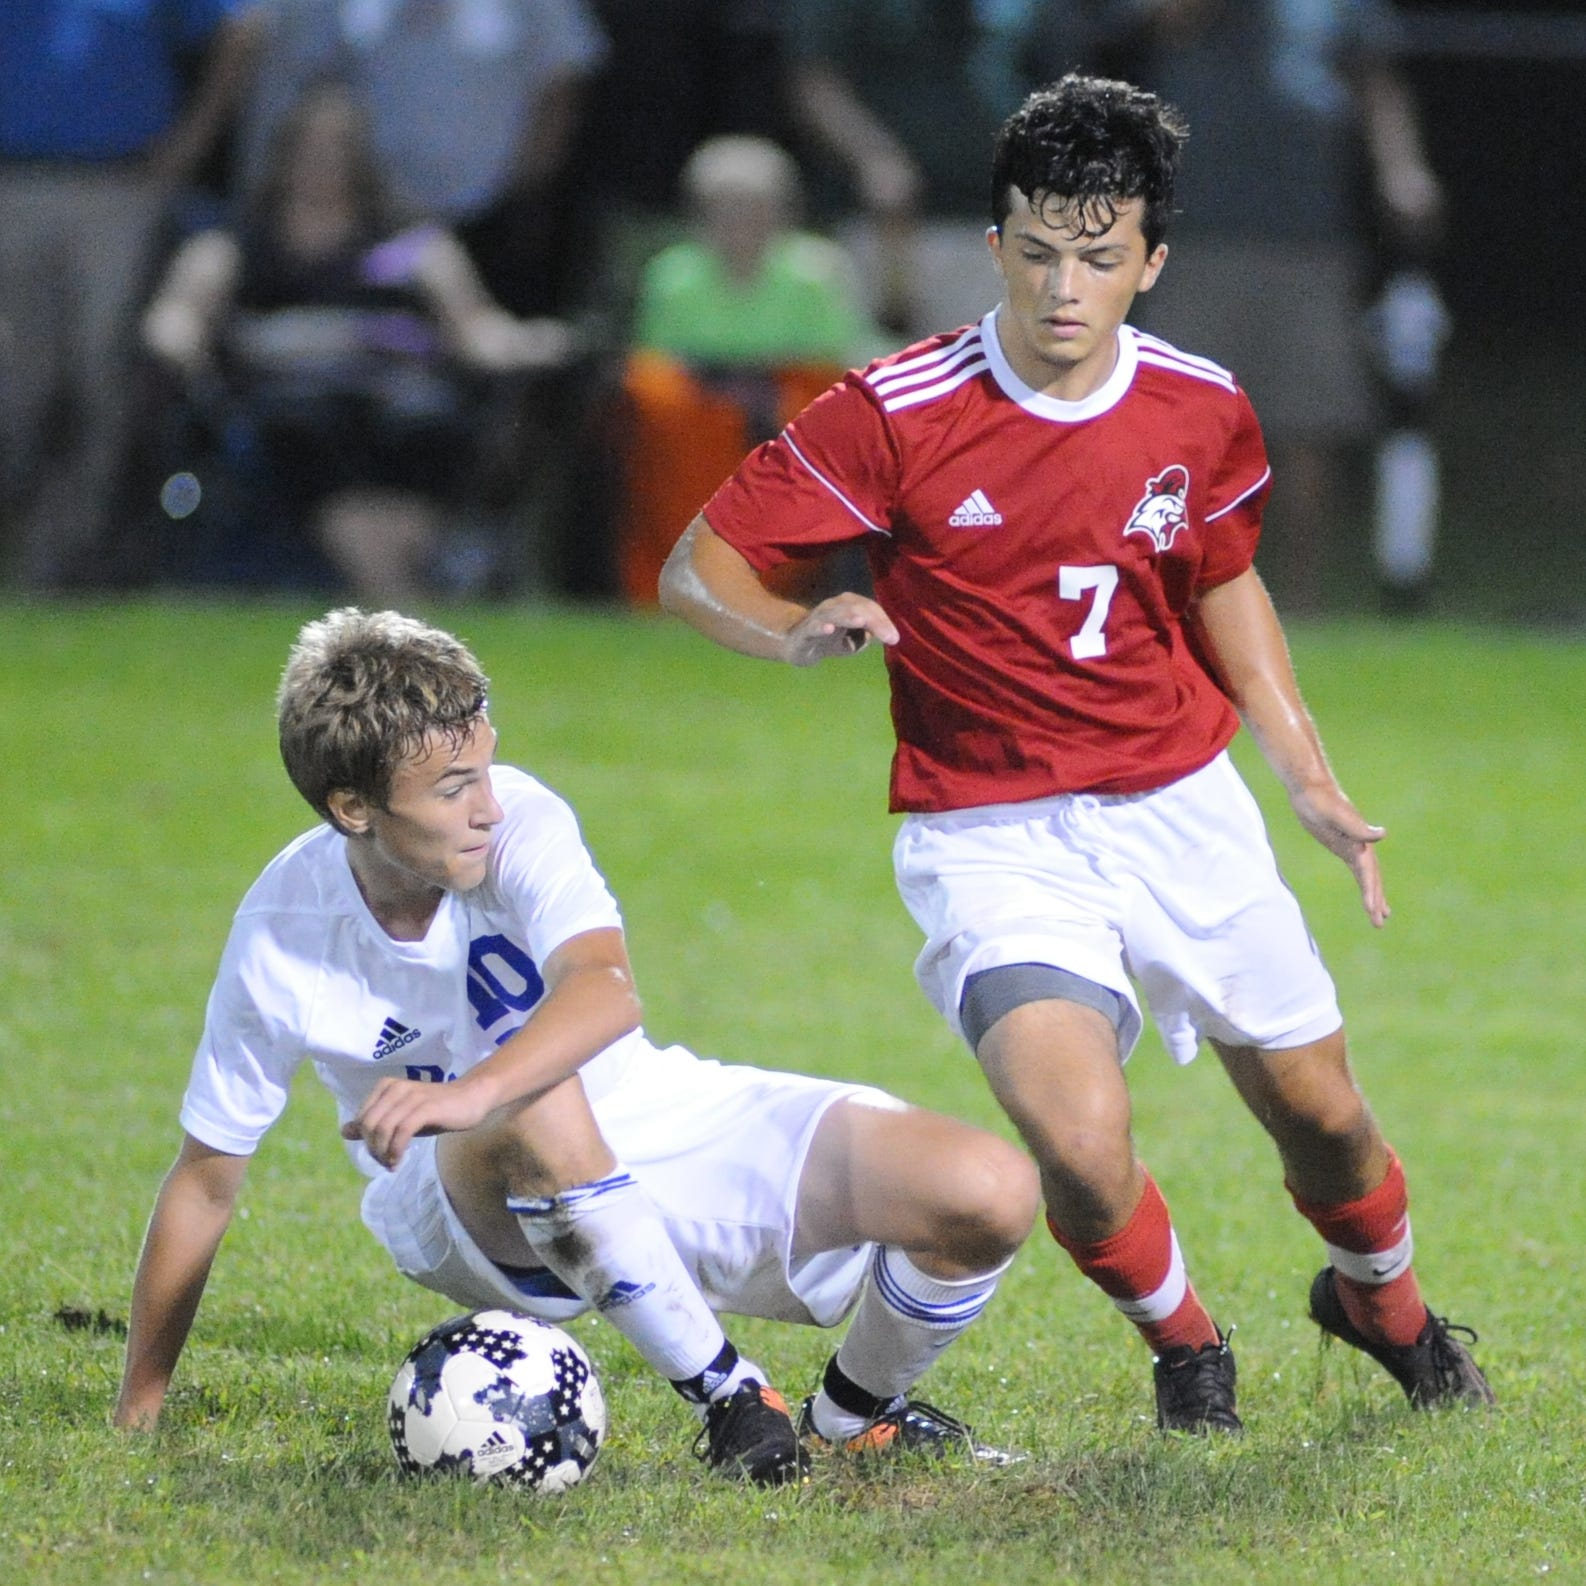 H.S. boys' soccer: Millville knocks off Vineland in first meeting of season